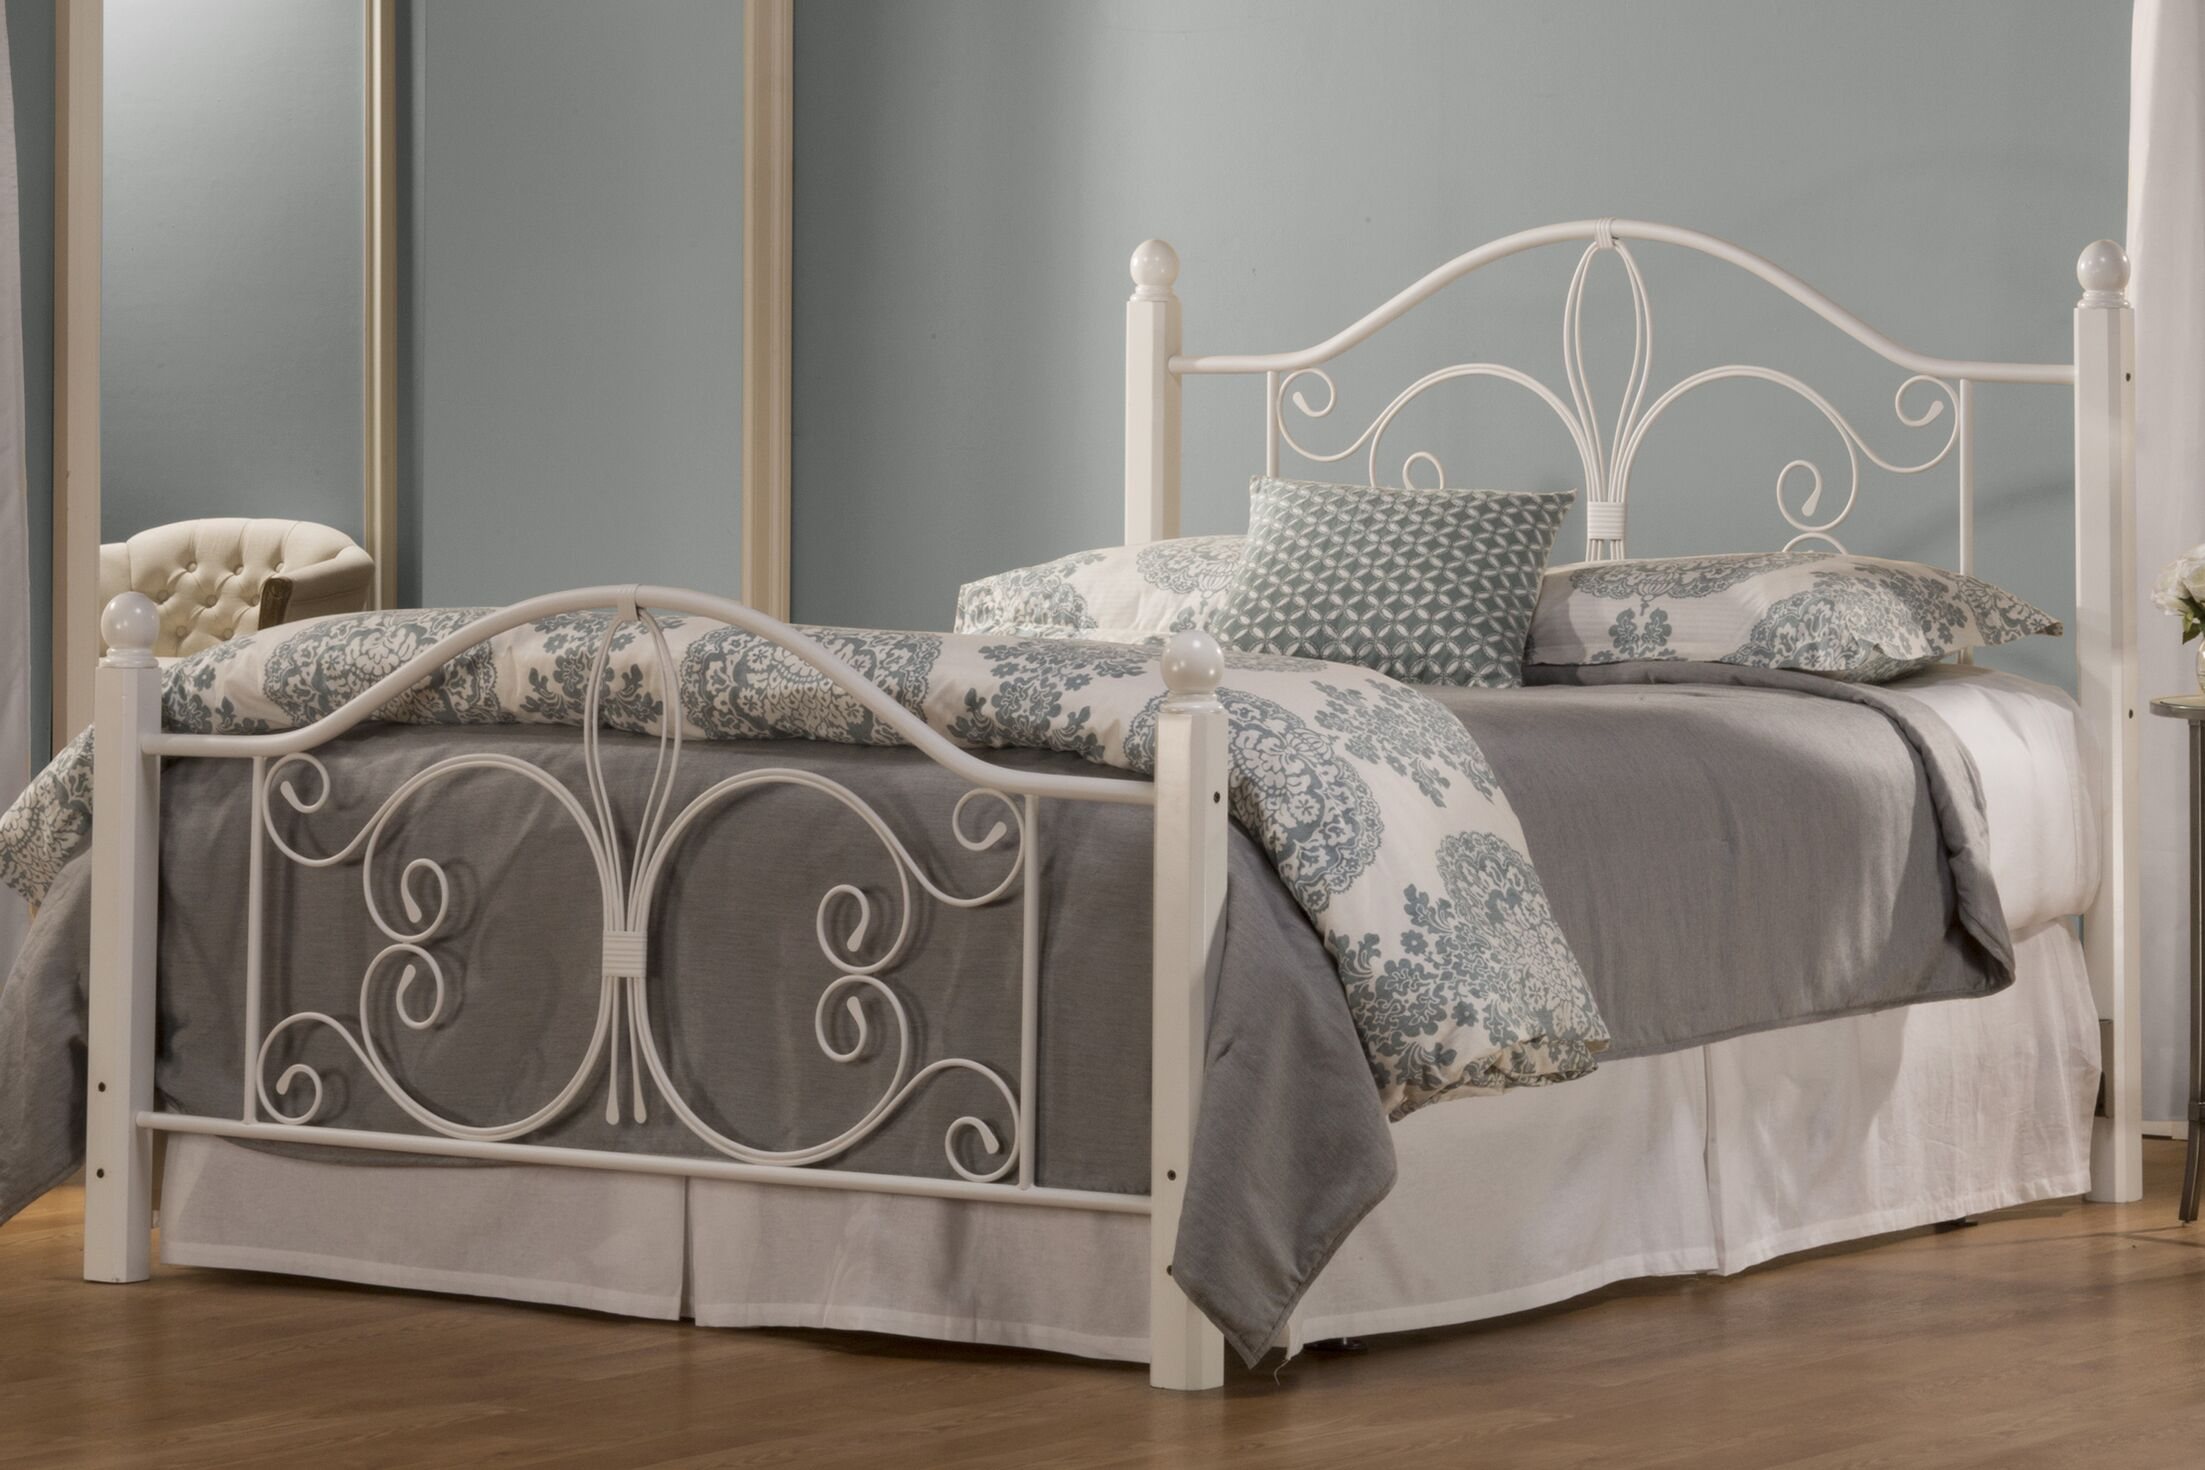 Antonia Bed Size: Twin